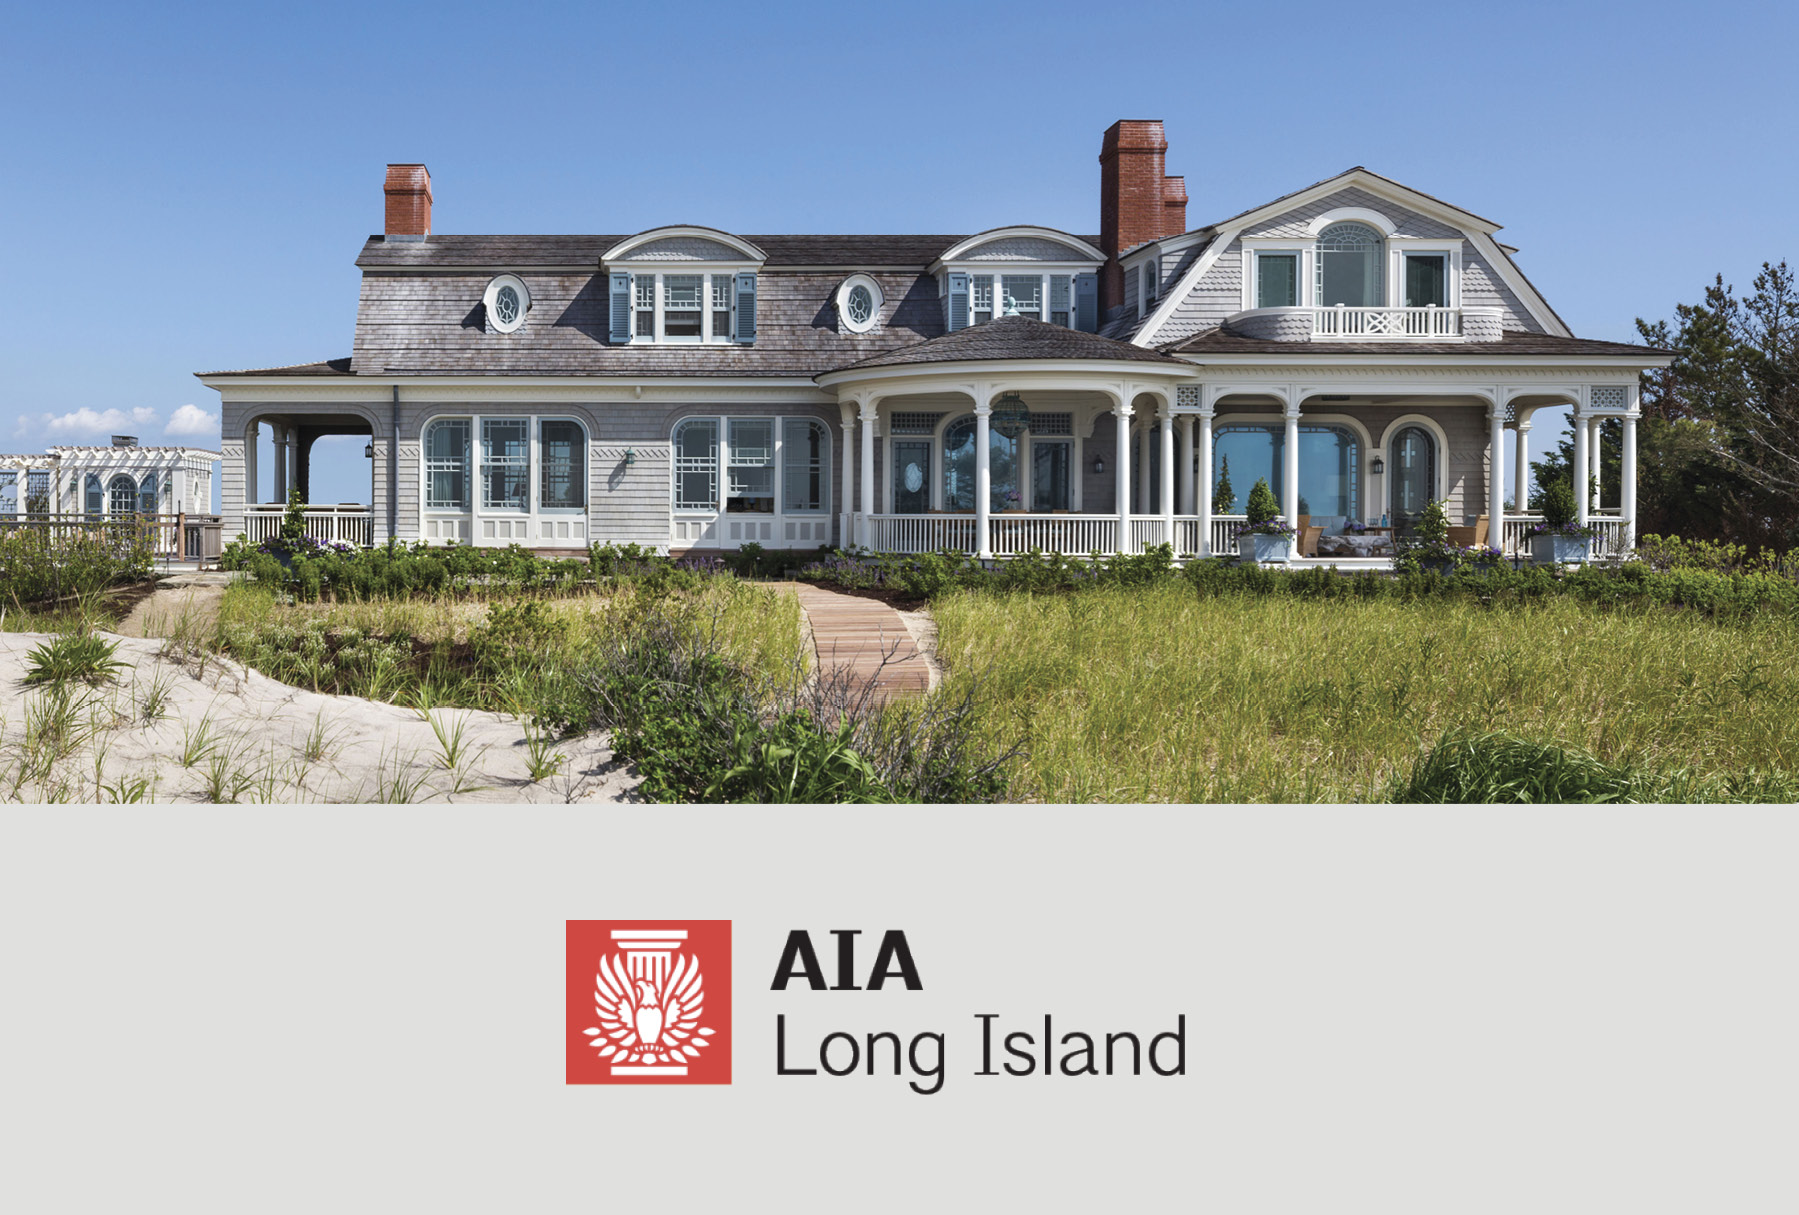 House in East Quogue Wins 2017 AIA Long Island Archi Award Commendation